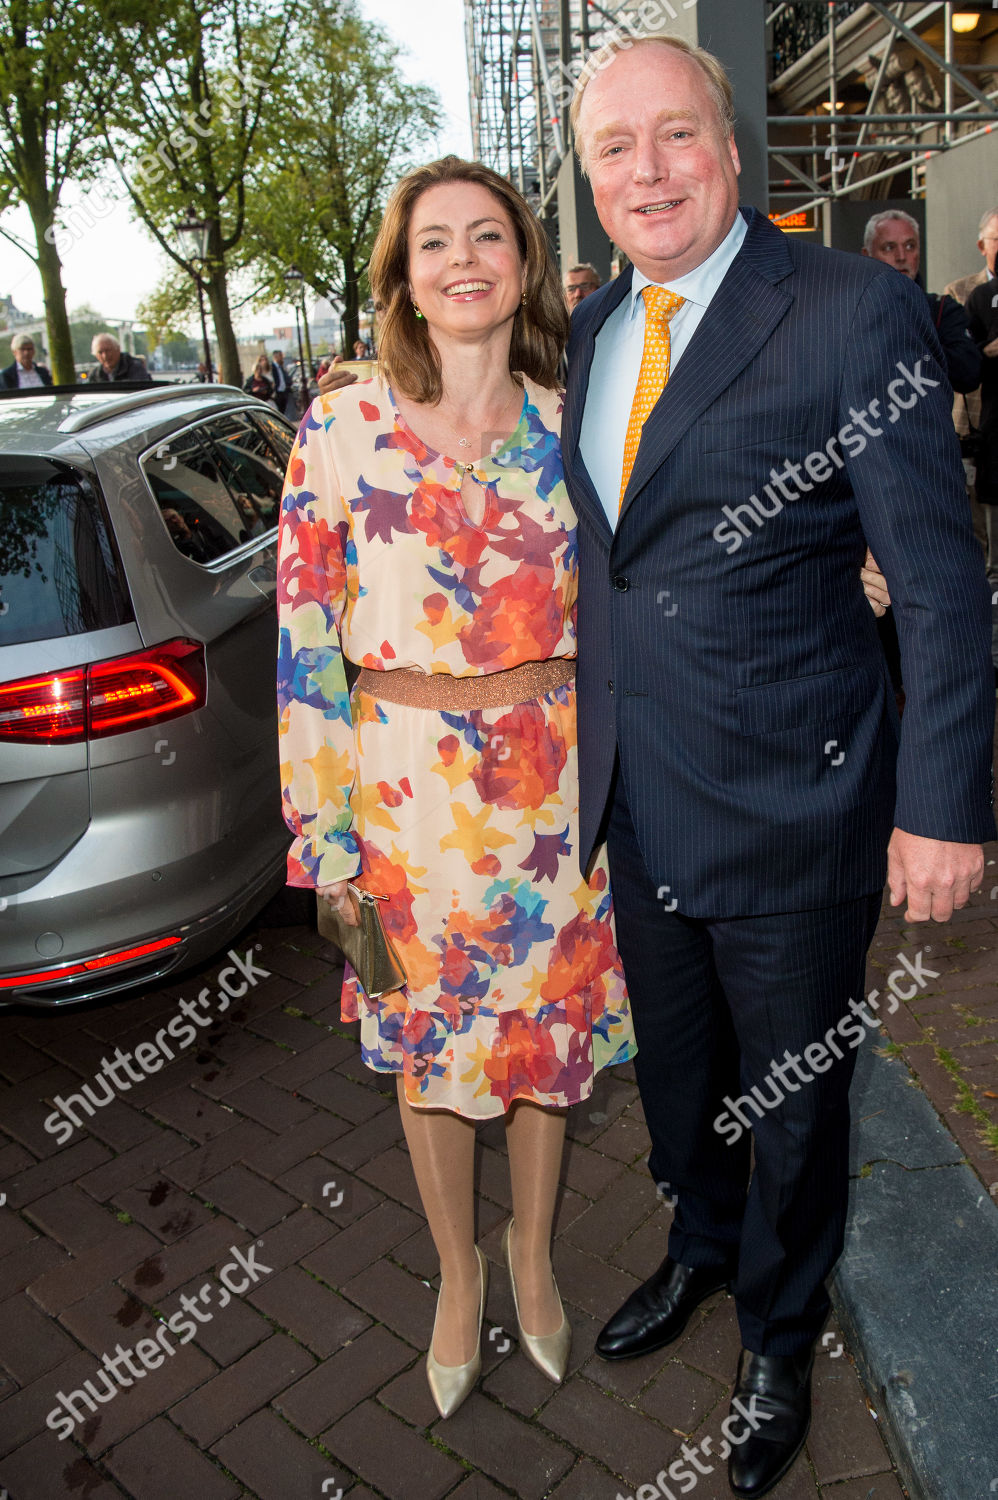 Stock photo of Princess Irene 80th birthday celebrations, Amsterdam, Netherlands - 16 Sep 2019